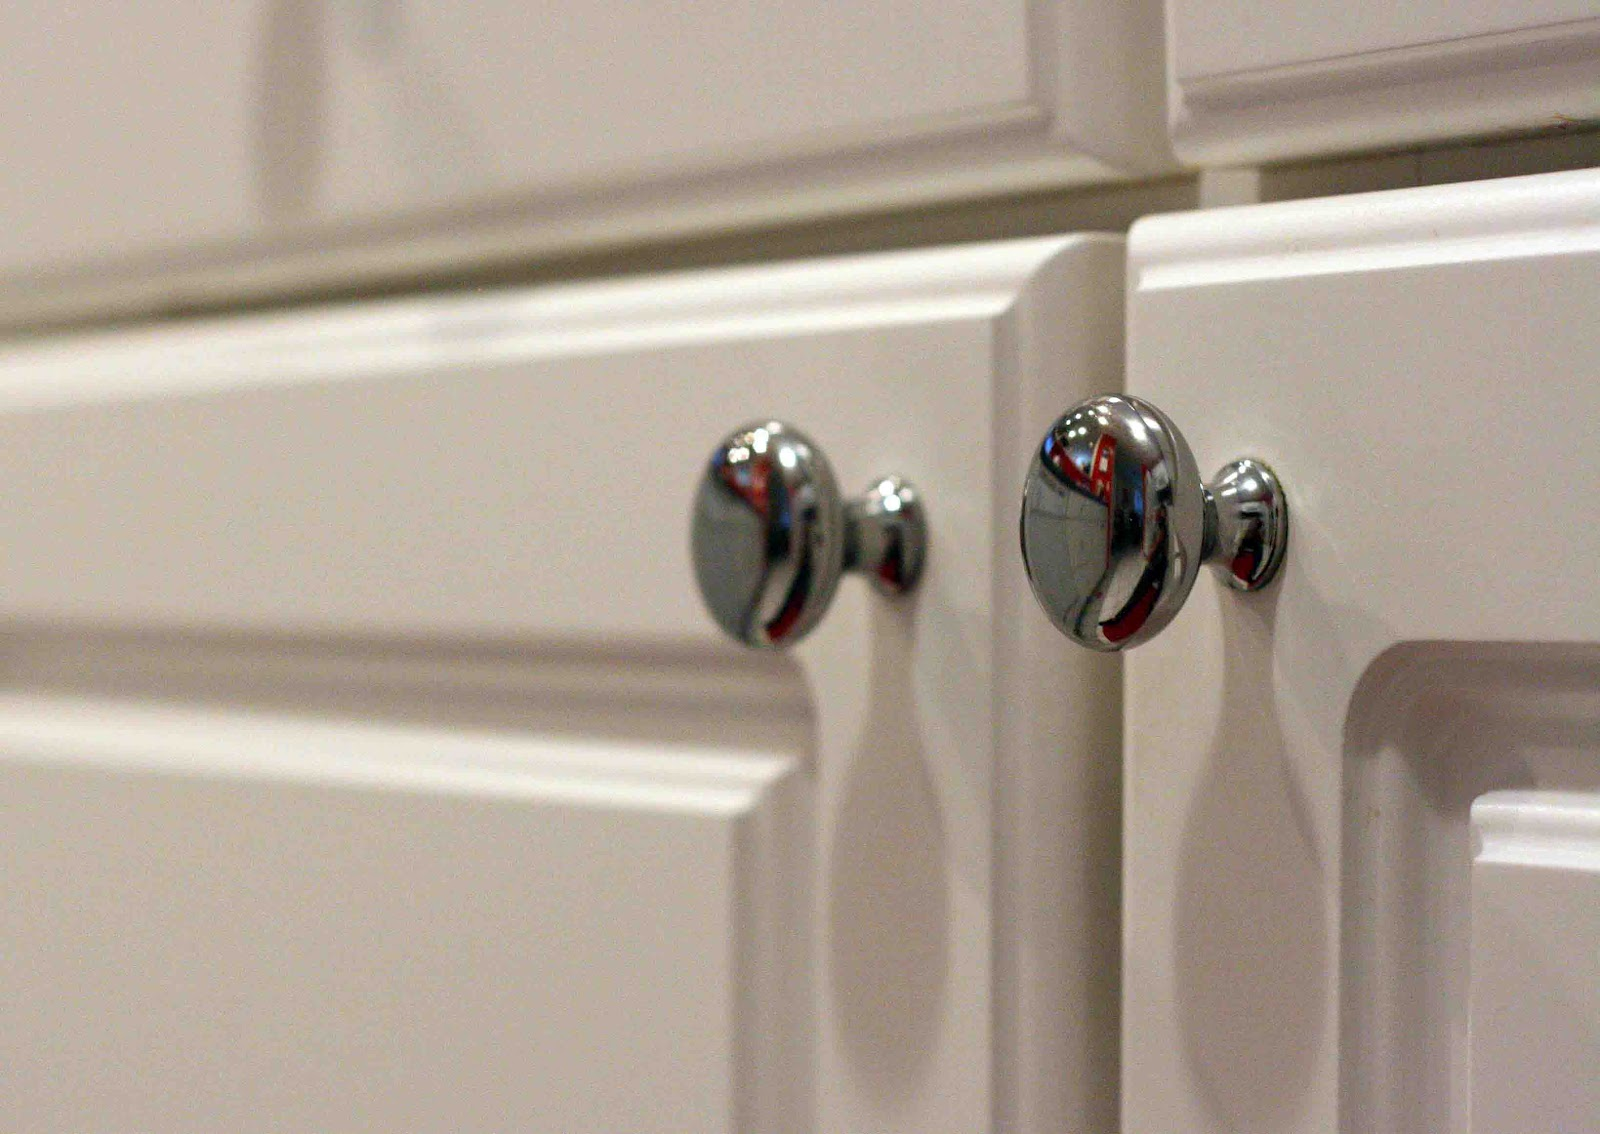 Michael Nash Design Build Homes Fairfax Virginia Kitchen Cabinet Handles And Knobs